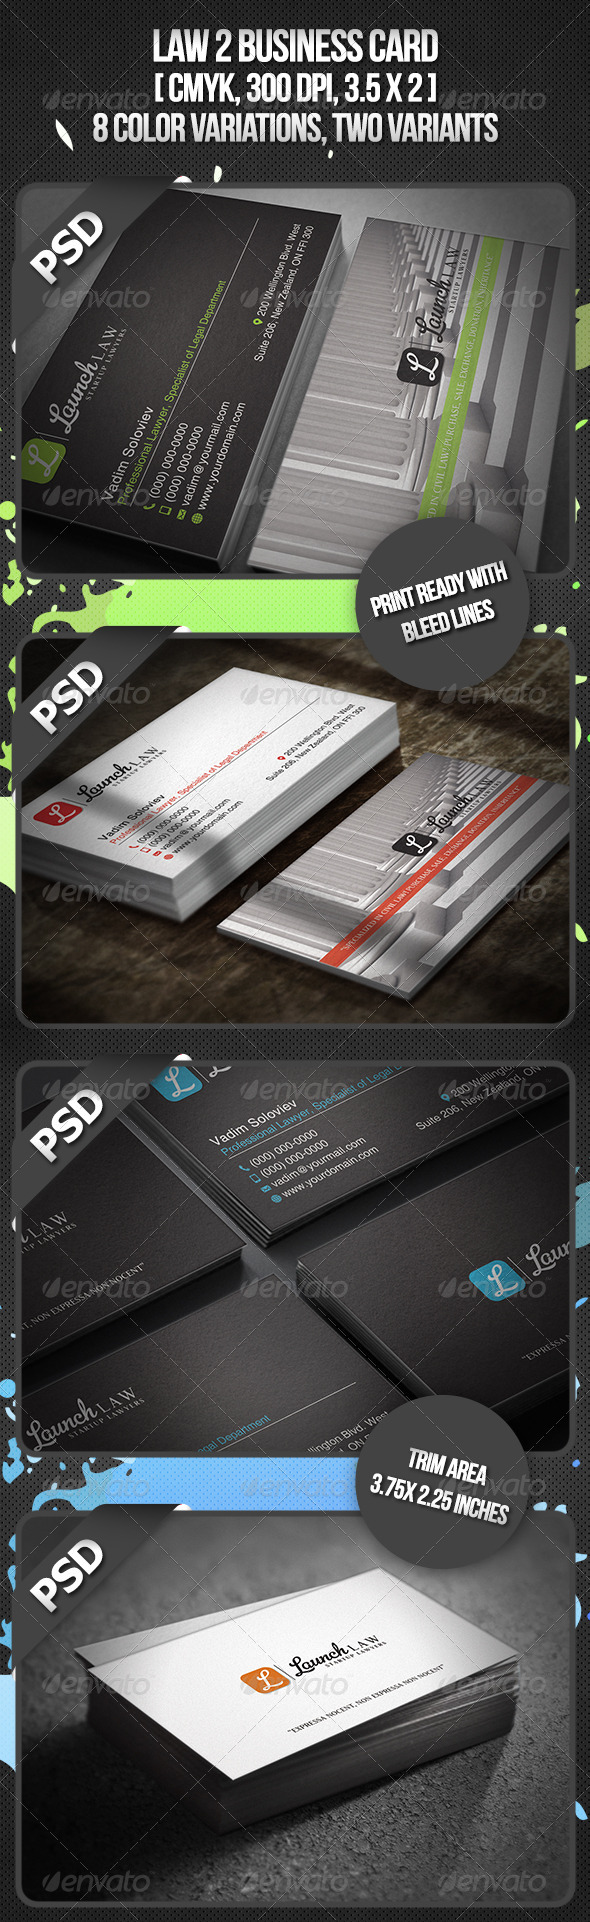 Law 2 Business Card - Creative Business Cards